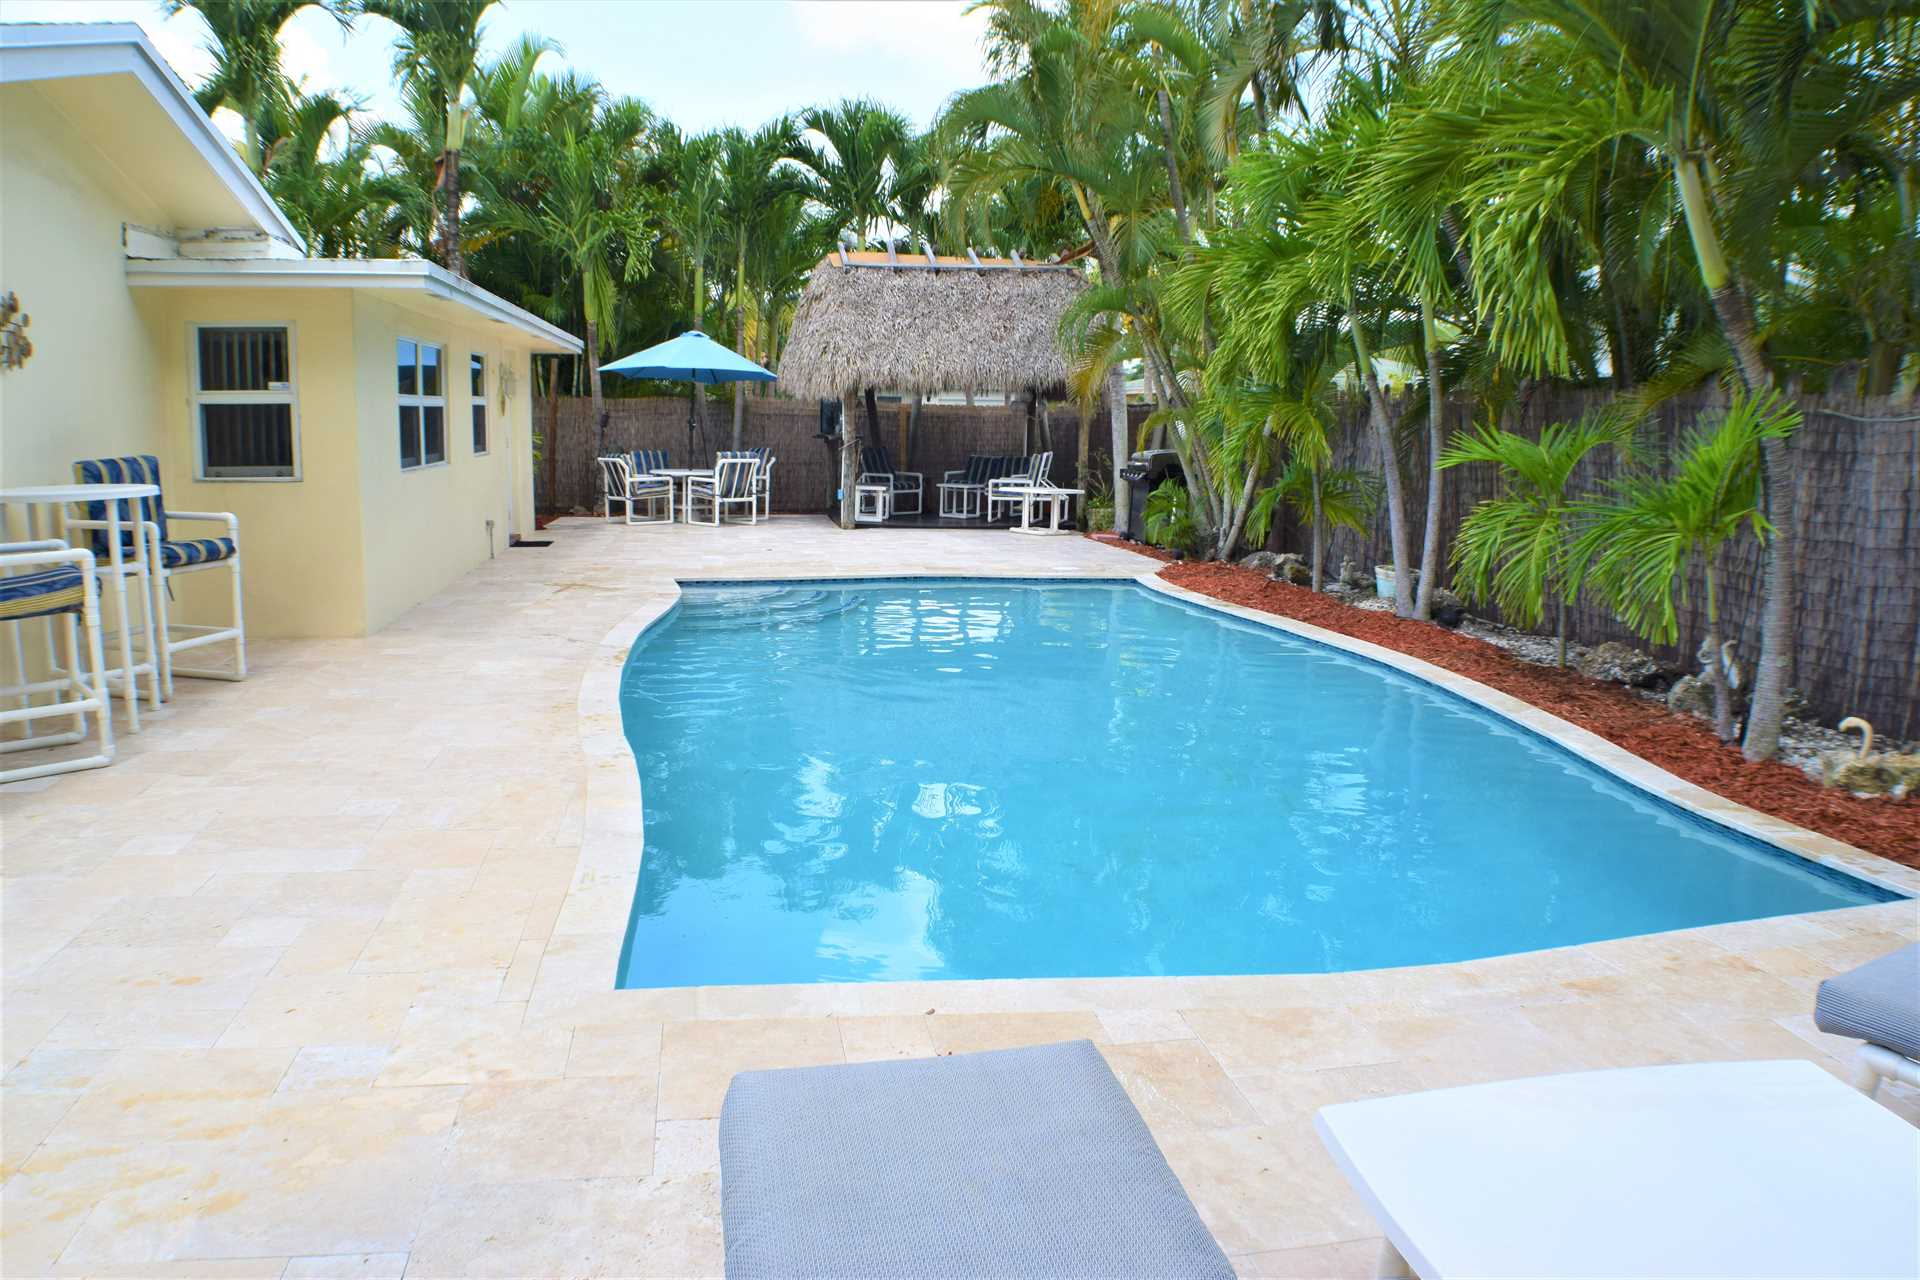 Heated pool is ready for family fun.